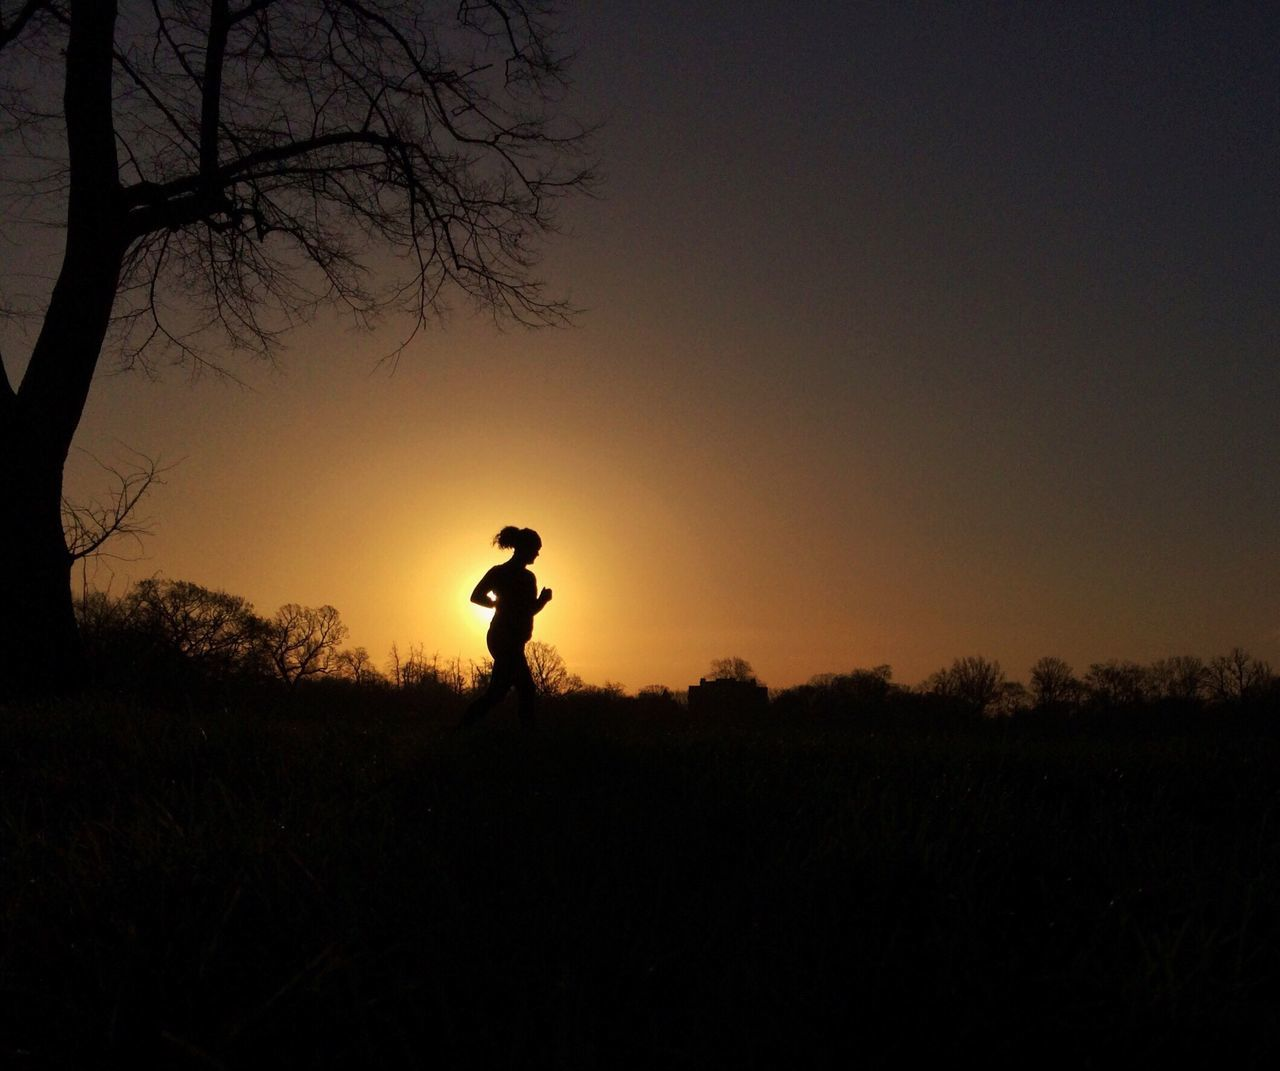 silhouette, sunset, nature, clear sky, field, tree, tranquil scene, beauty in nature, outdoors, real people, scenics, landscape, tranquility, one person, men, standing, sky, full length, day, people